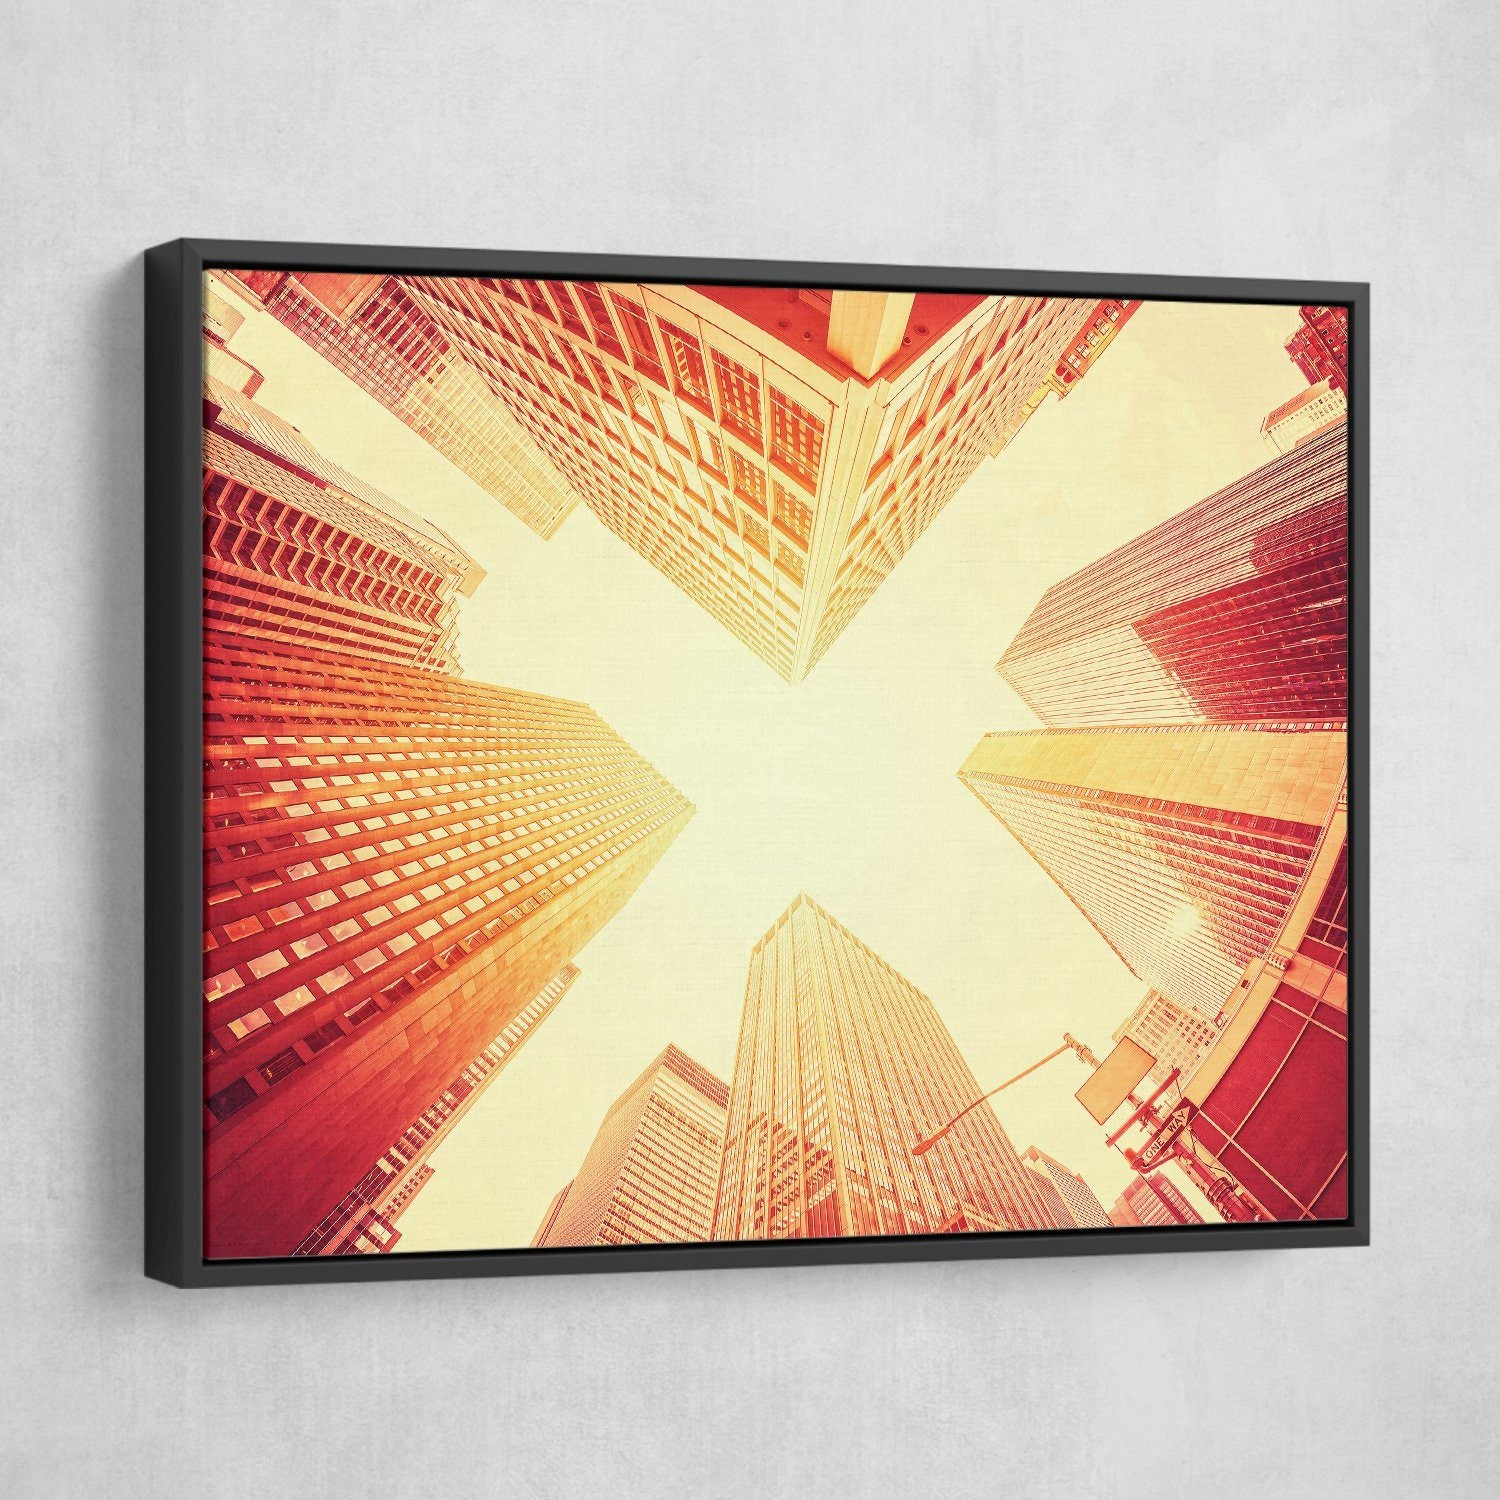 Manhattan wall art black frame